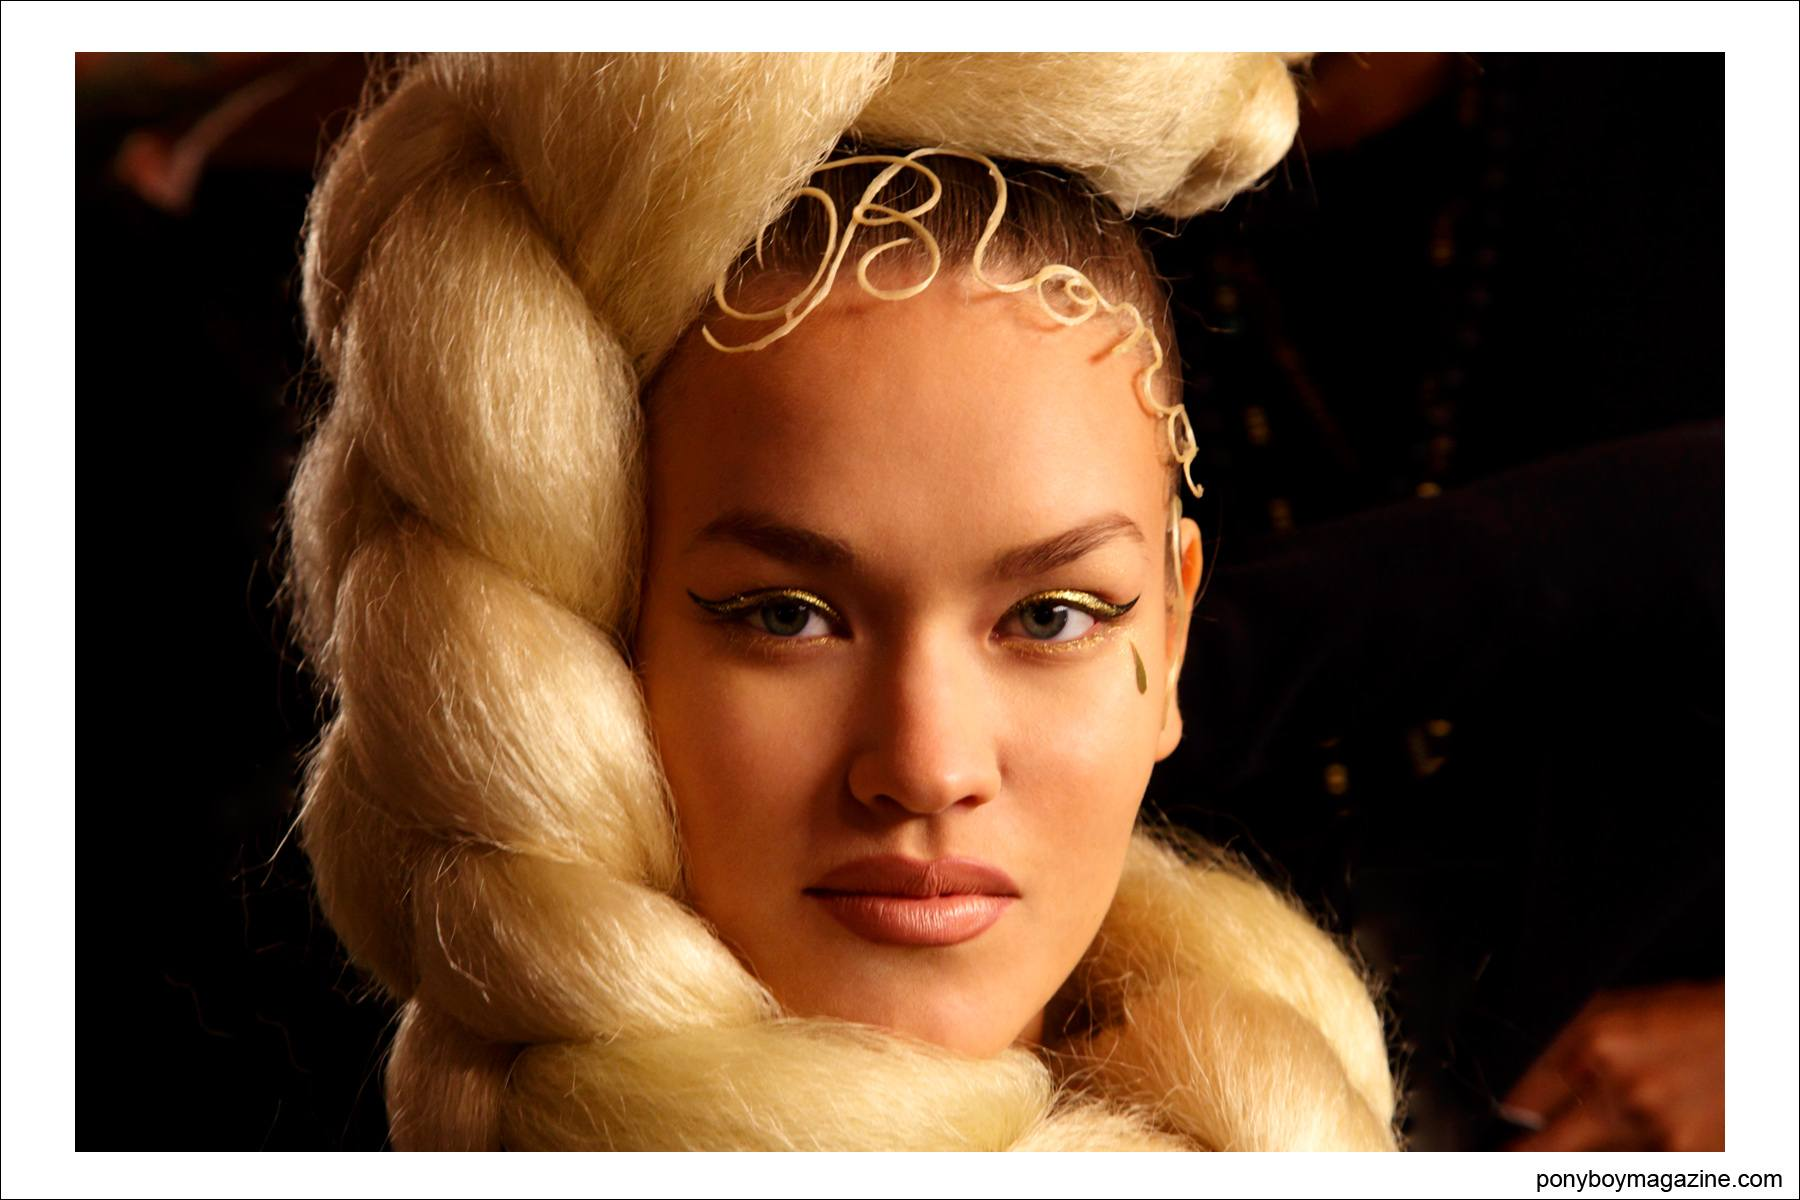 A portrait of a model with a huge braid, photographed backstage at The Blonds S/S15. Photograph taken by Alexander Thompson for Ponyboy Magazine.